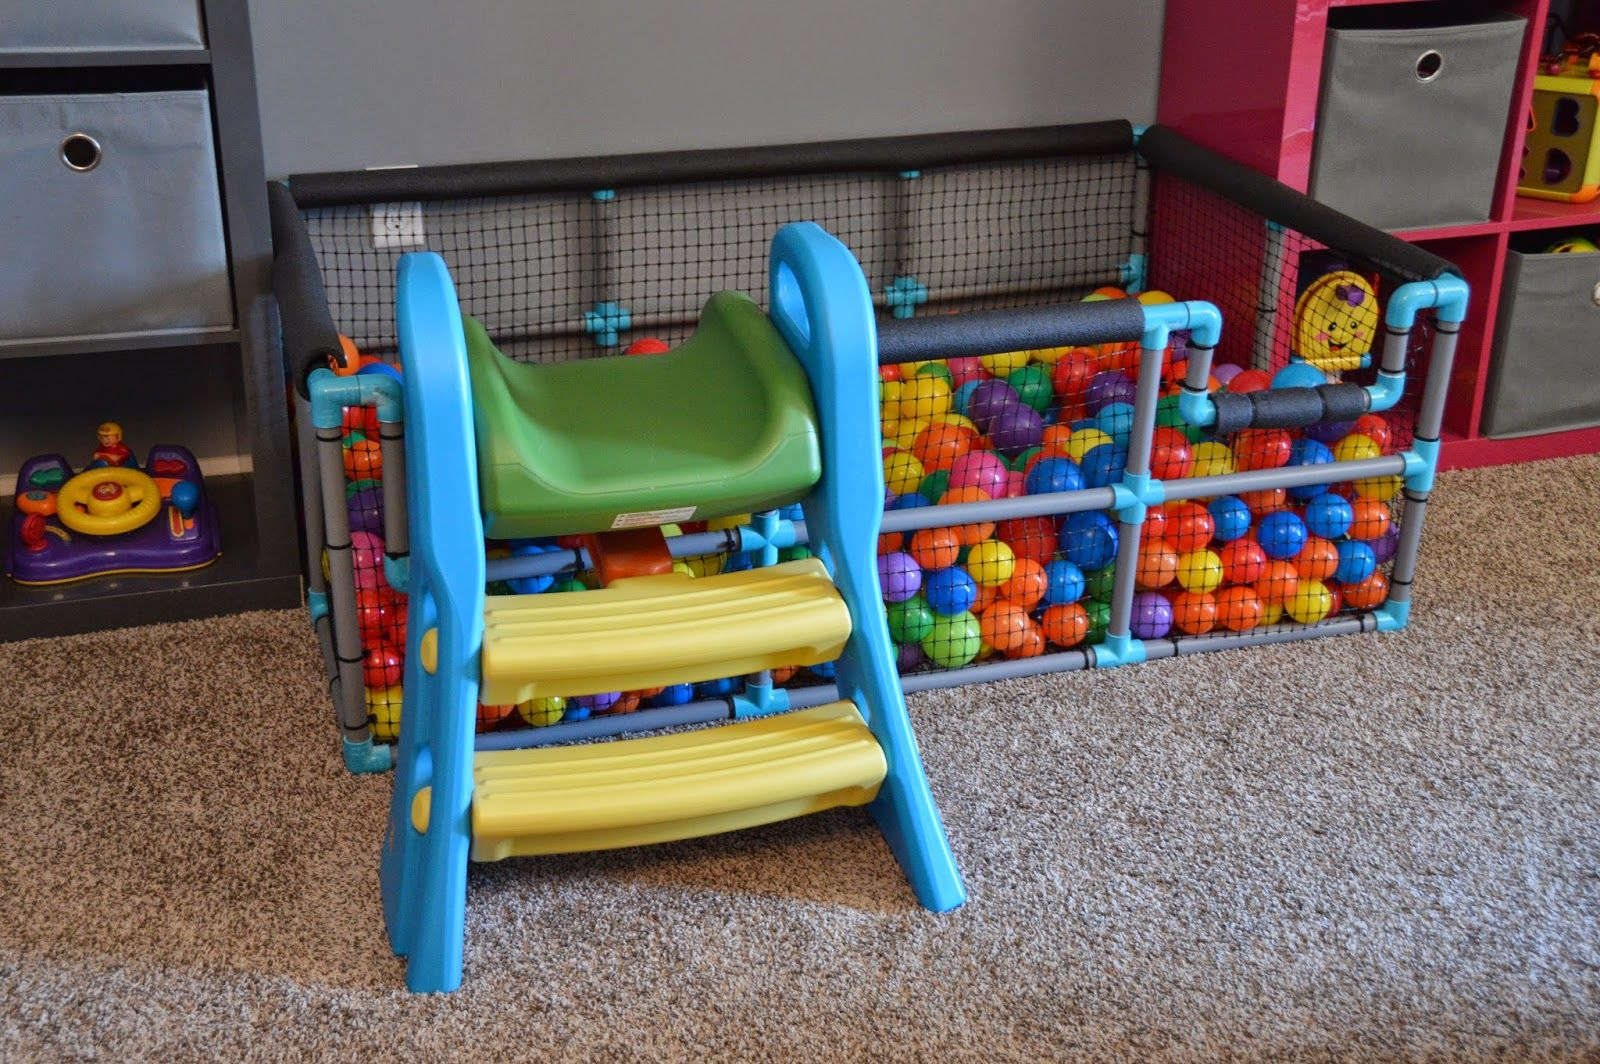 Tour Of Our Home Playroom Kids Playroom Toy Rooms Ball Pit